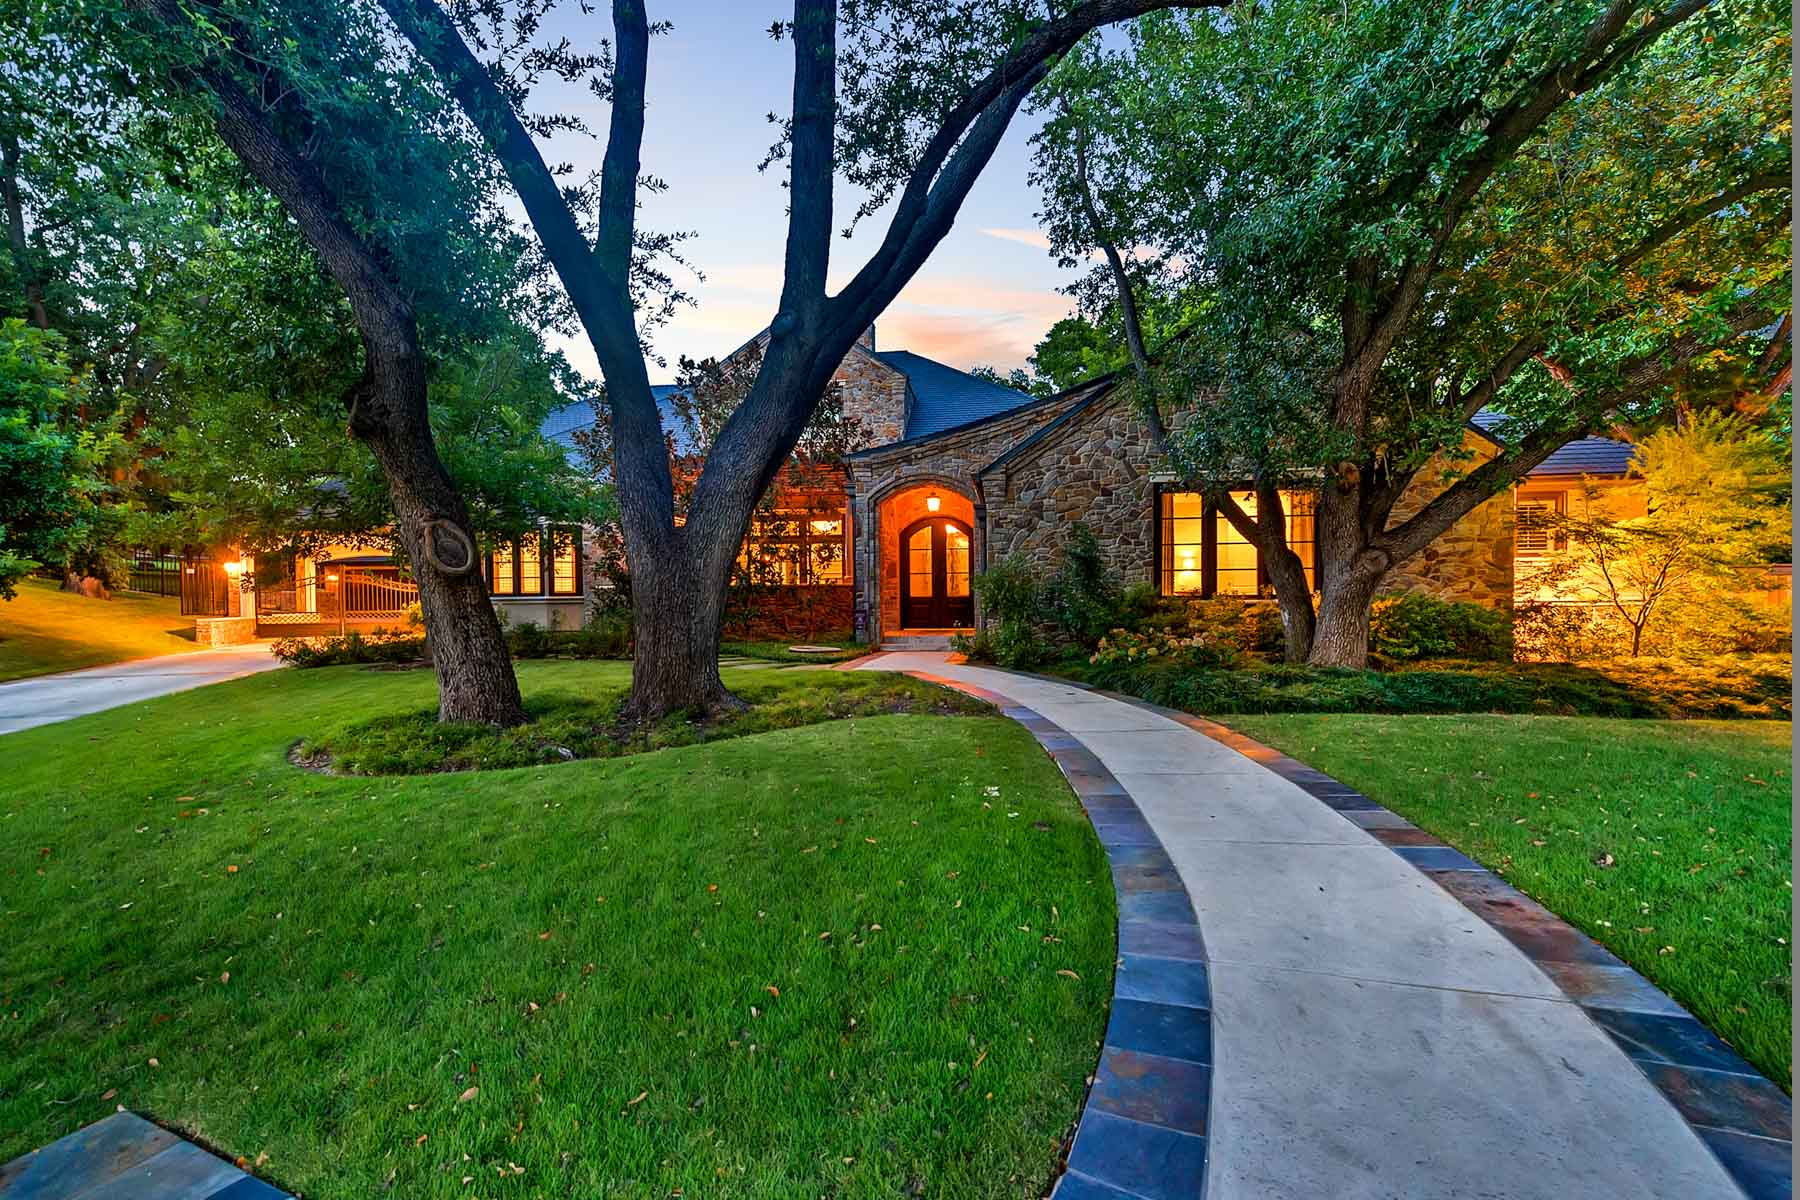 Maison unifamiliale pour l Vente à Ridgmar Traditional 1701 Dakar Rd Fort Worth, Texas, 76116 États-Unis